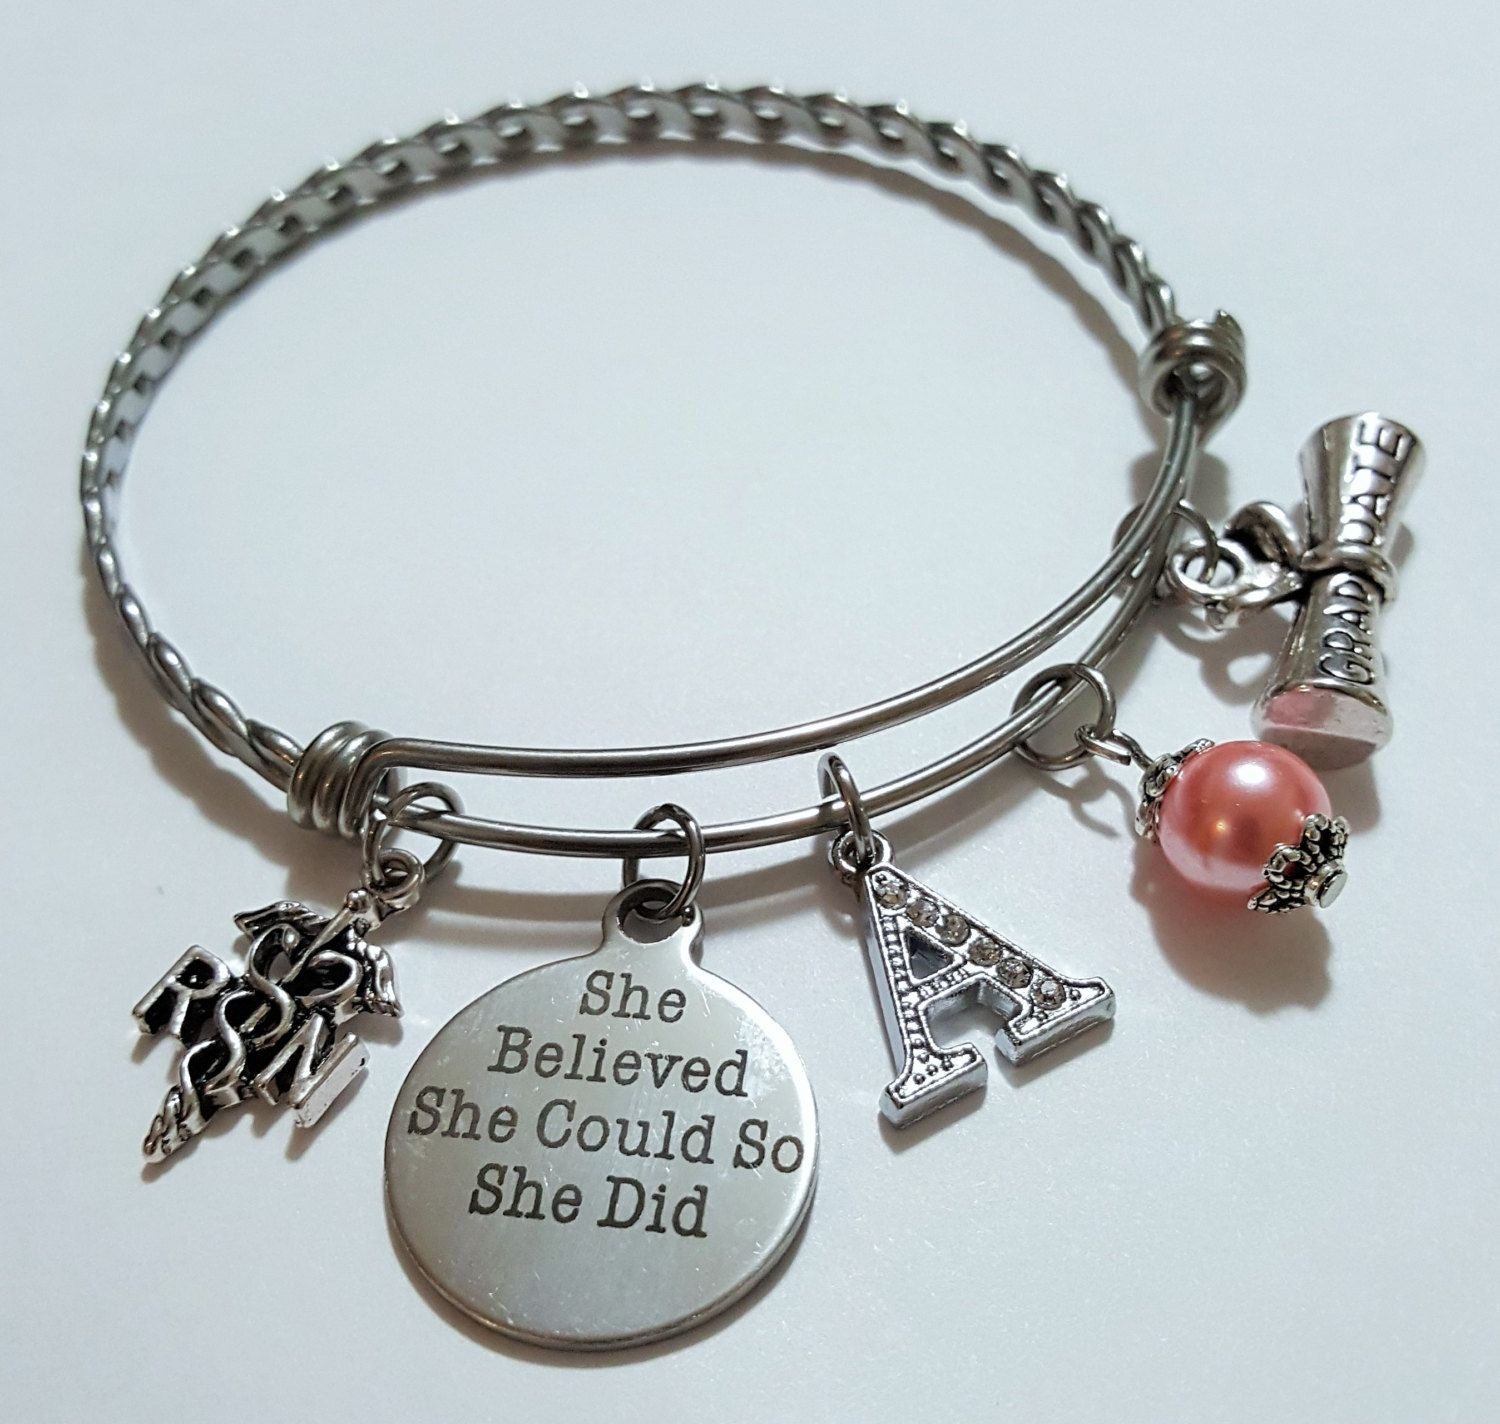 dream products quotes personalized custom tone image silver every of stamps wish for begins her inspirational a dandelion product with bracelet charm graduation